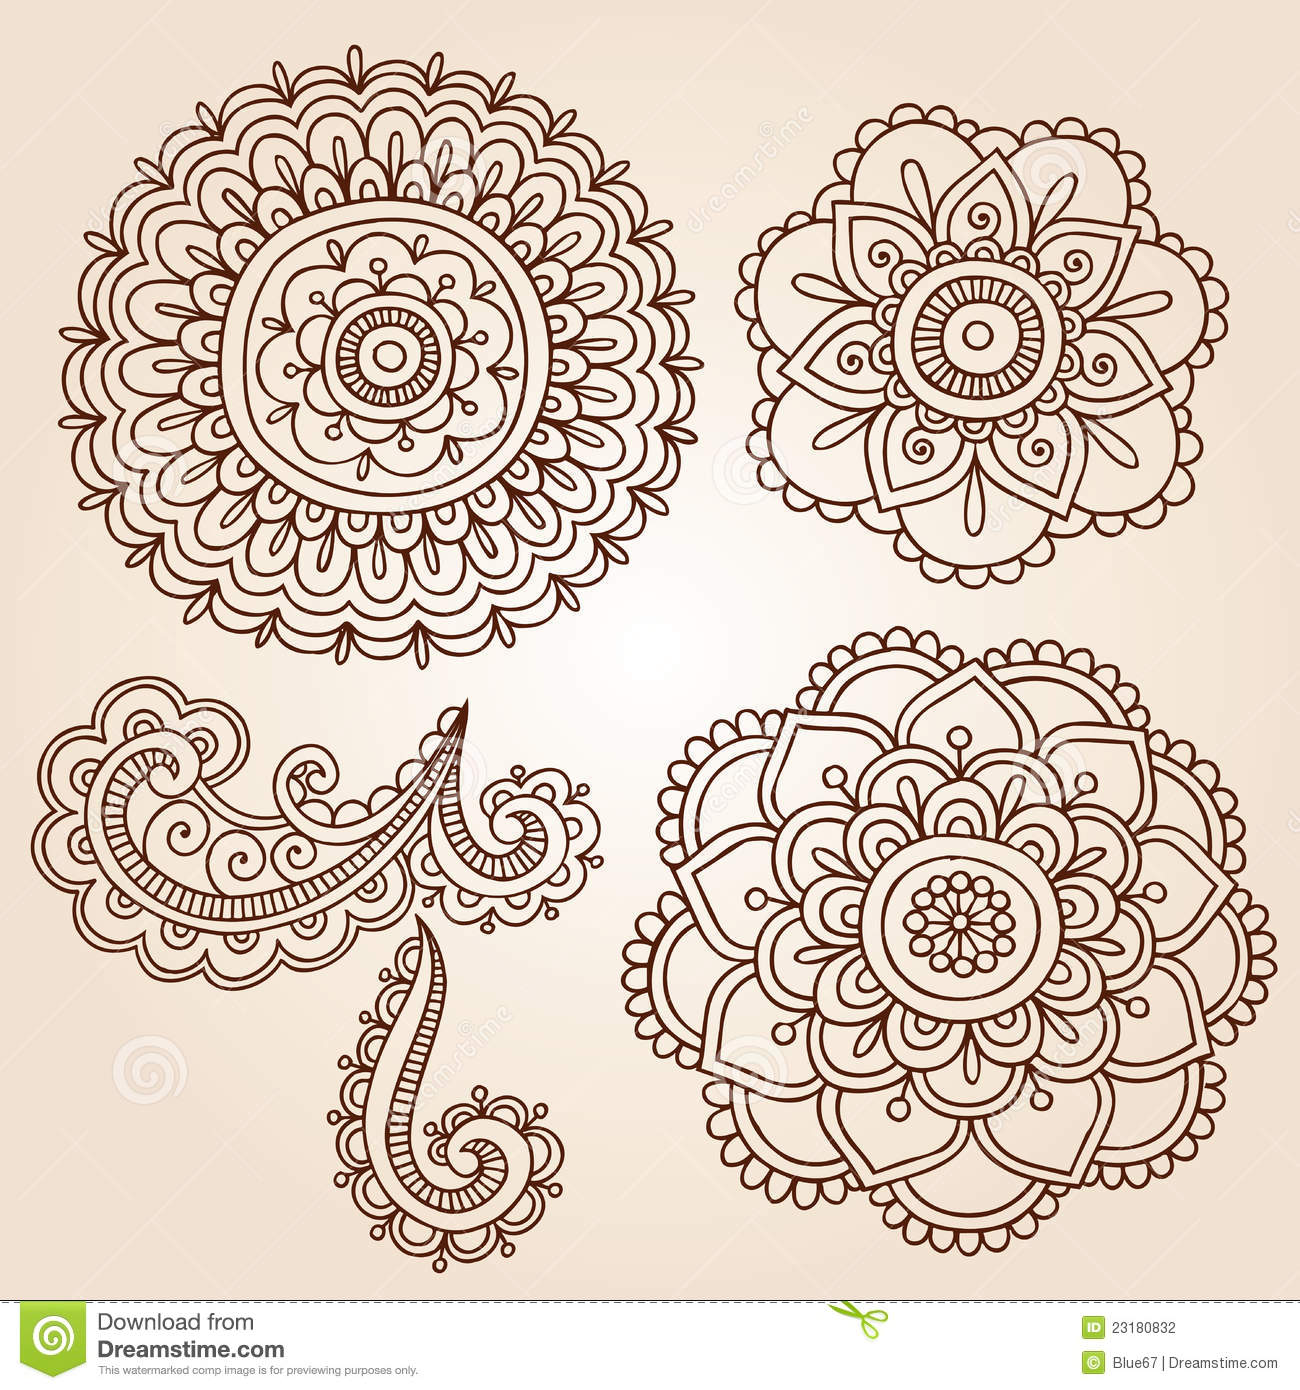 Henna mehndi mandala flower doodles abstract floral paisley design